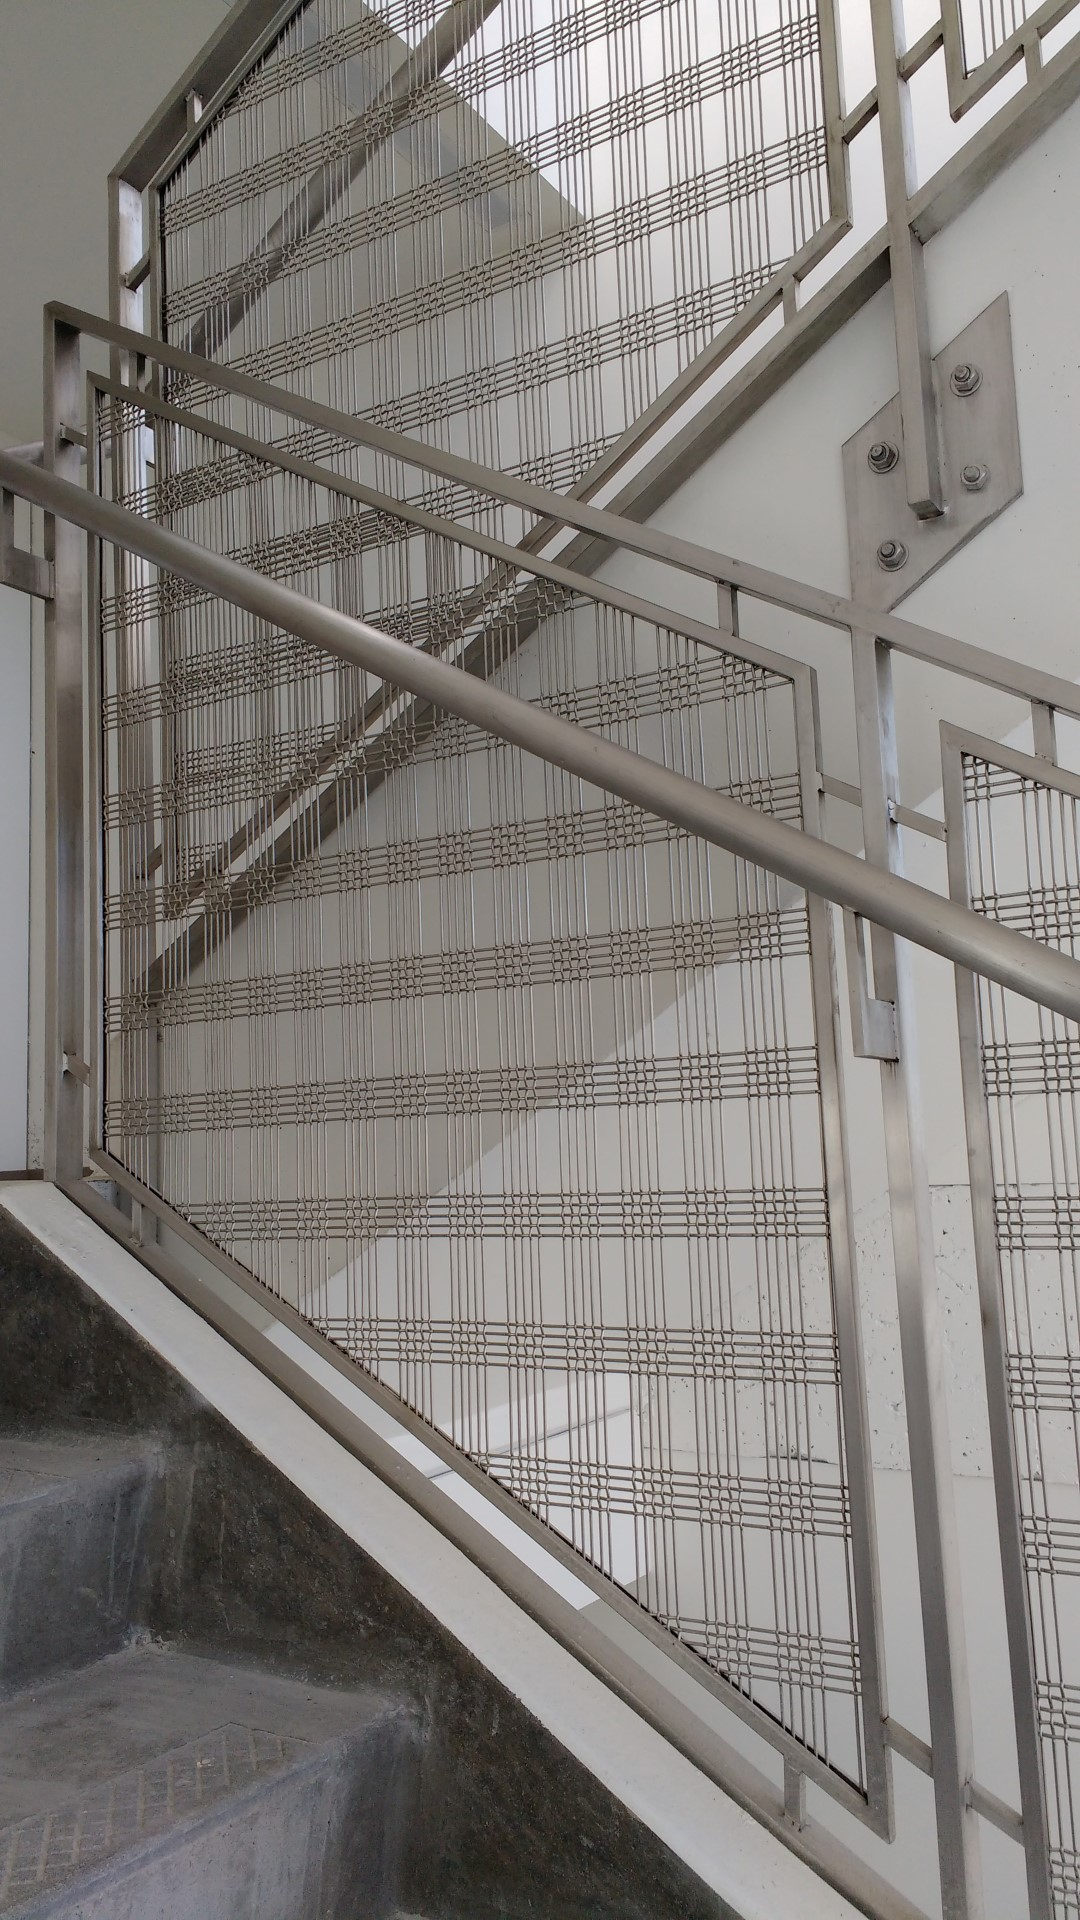 Banker Wire infill finishes off a stairway that mirrors the sophistication of the research performed at this facility.